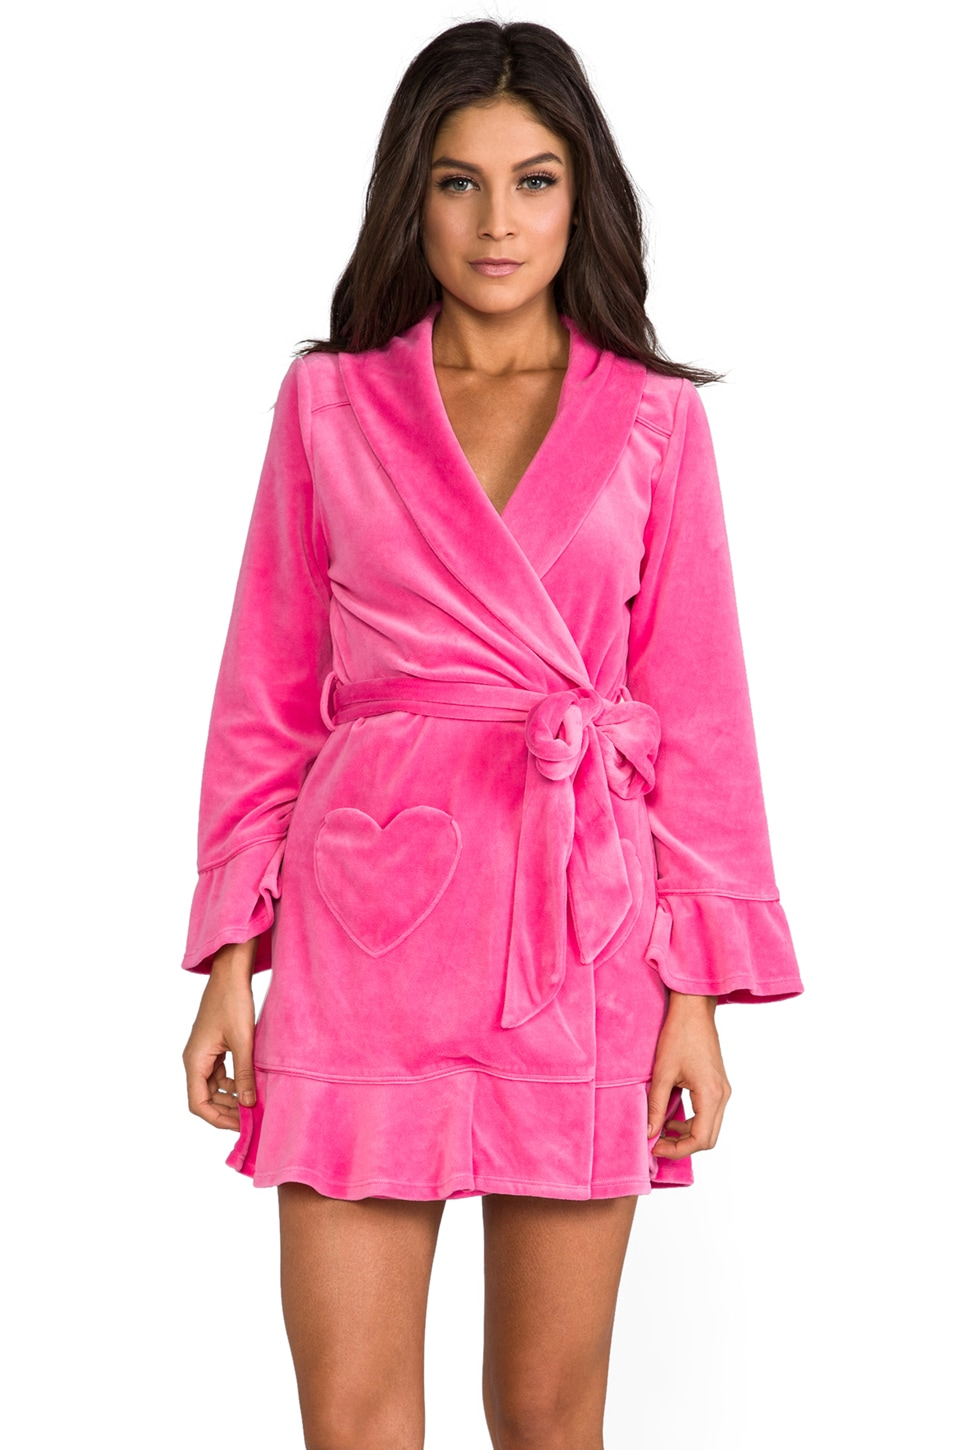 Juicy Couture Velour Robe in Highlighter